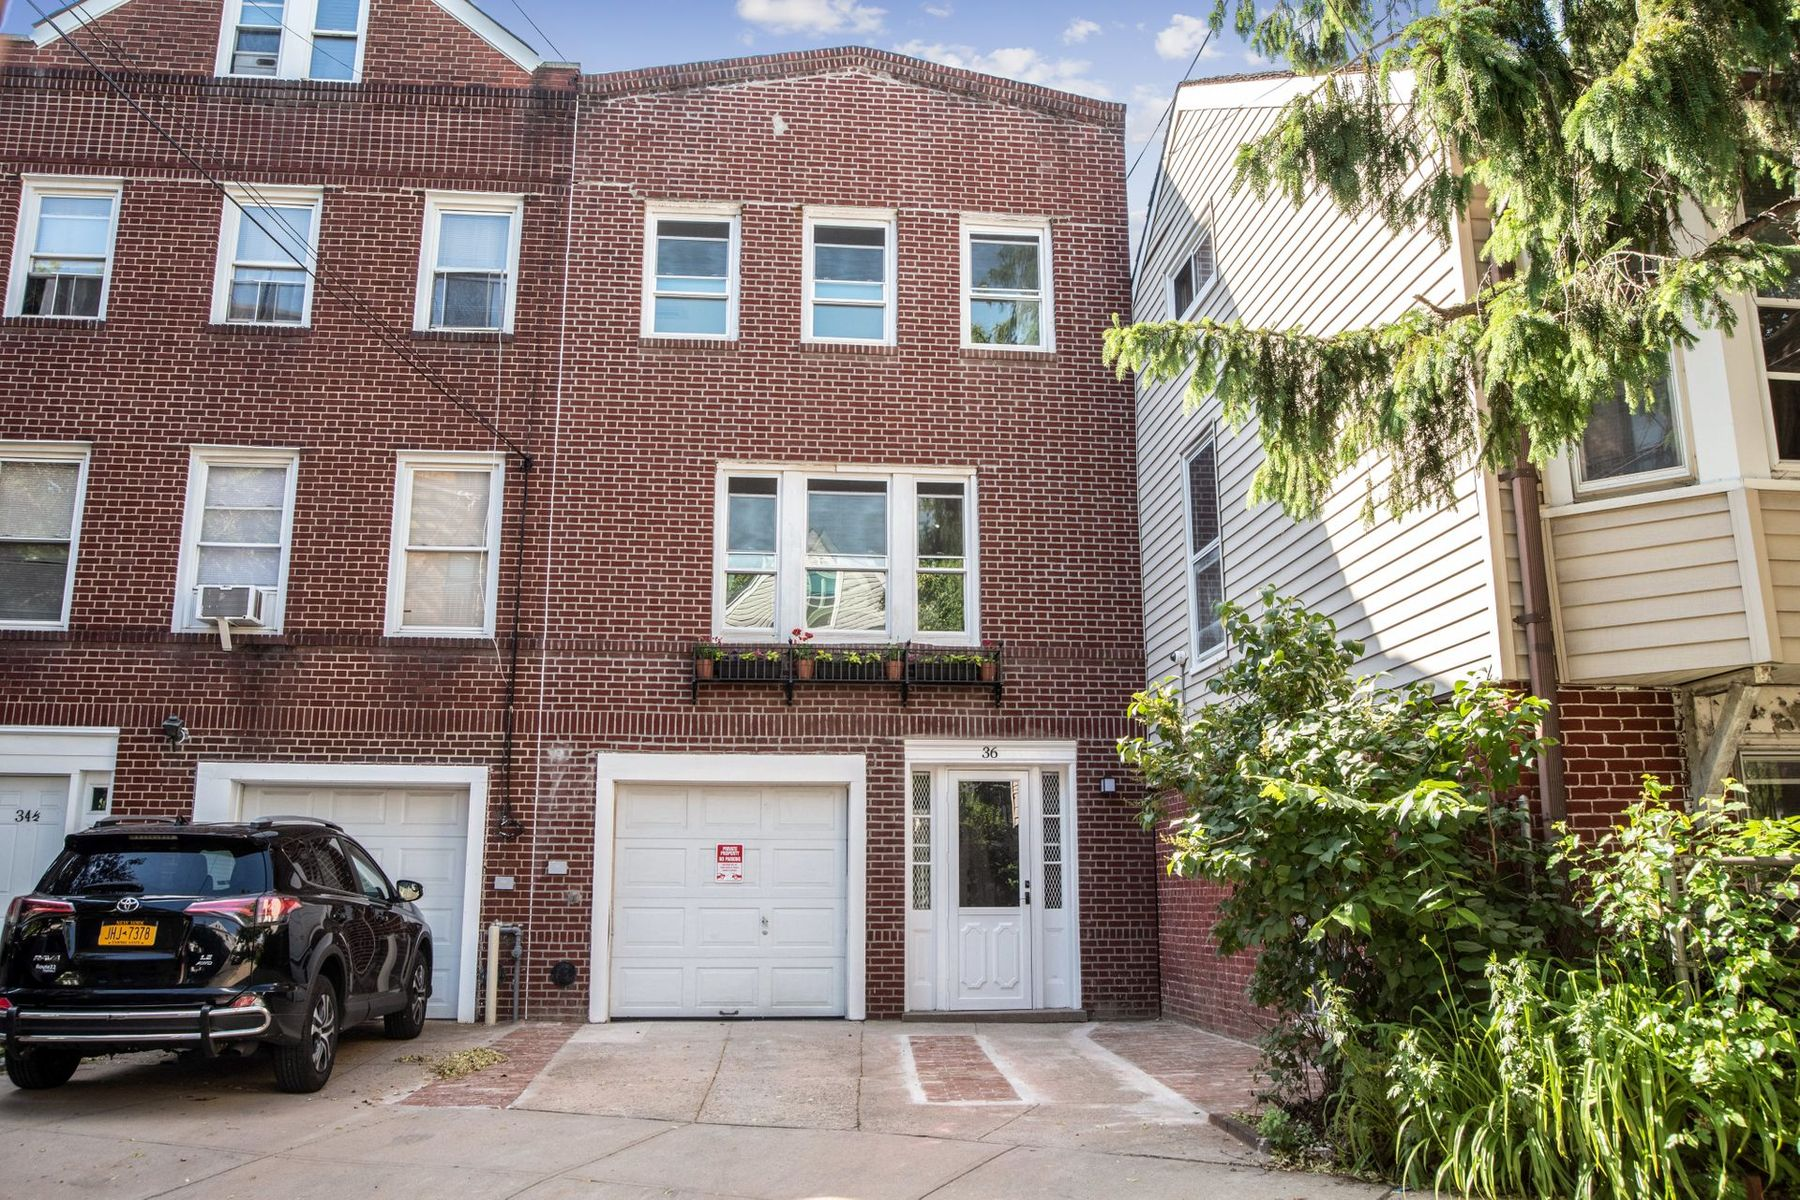 Townhouse/Row House for sale in 36 Van Corlear Place, Bronx, NY ,10463